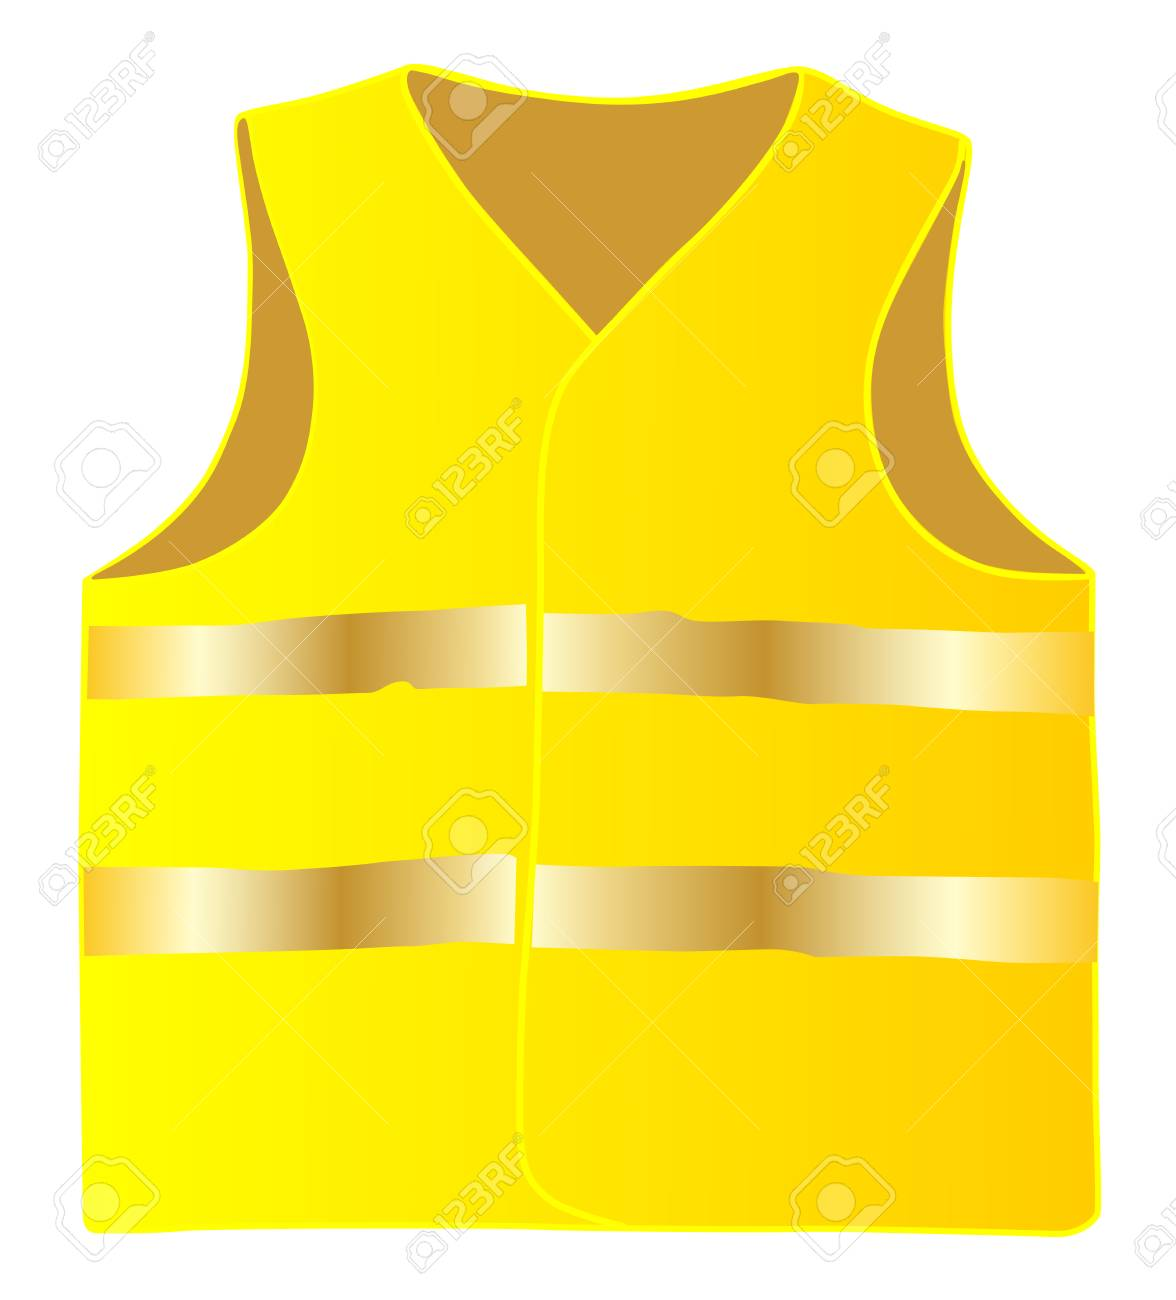 Safety vest isolate on white background vector eps 10 - 106300495